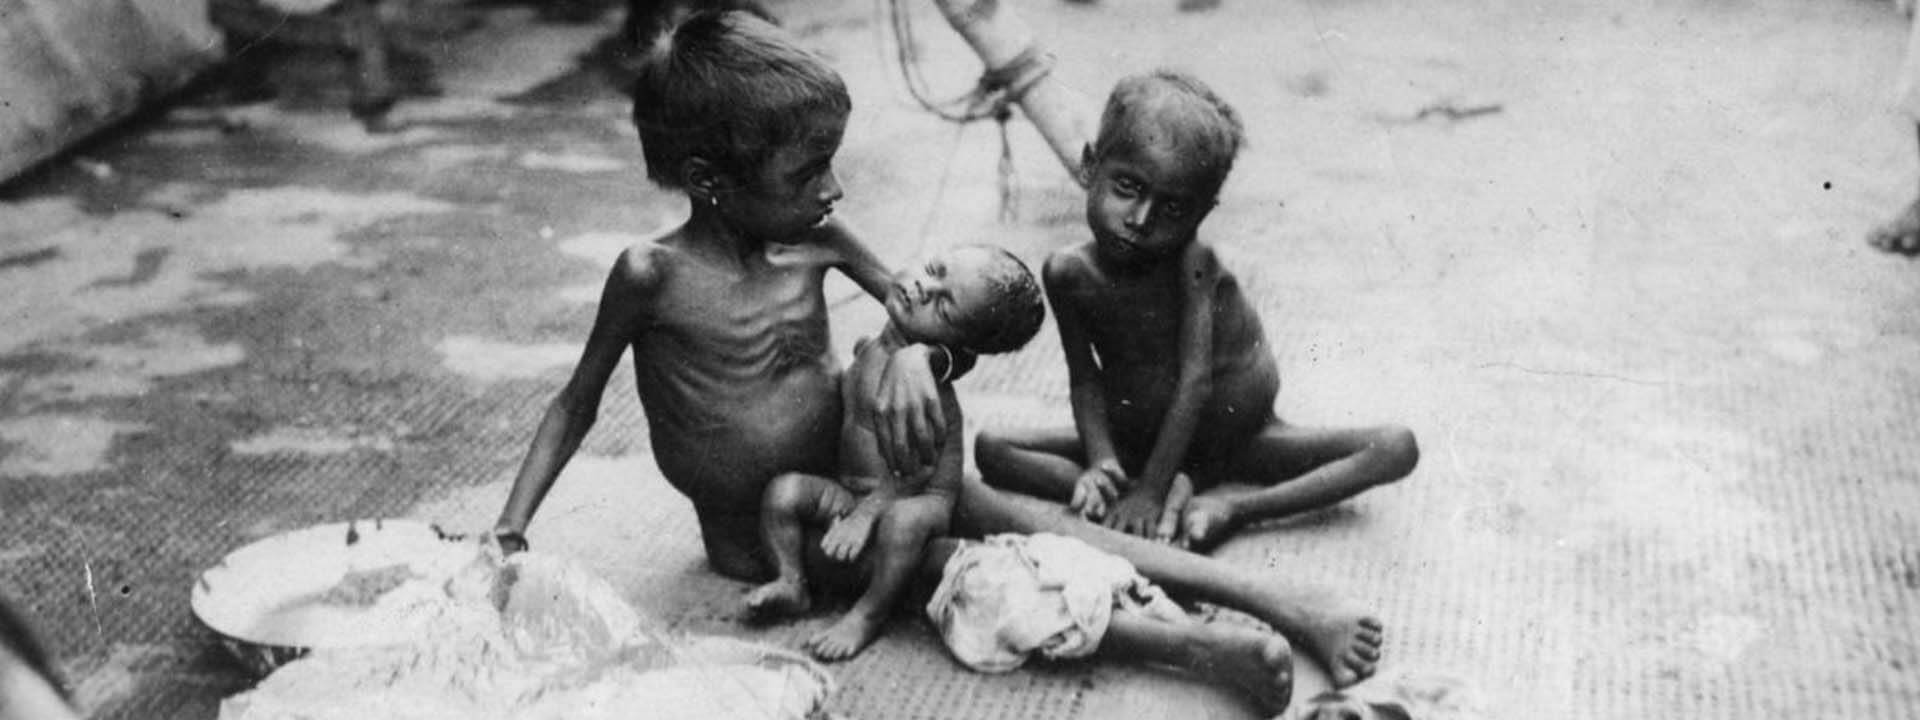 Revisiting the Great 1943 Bengal Famine